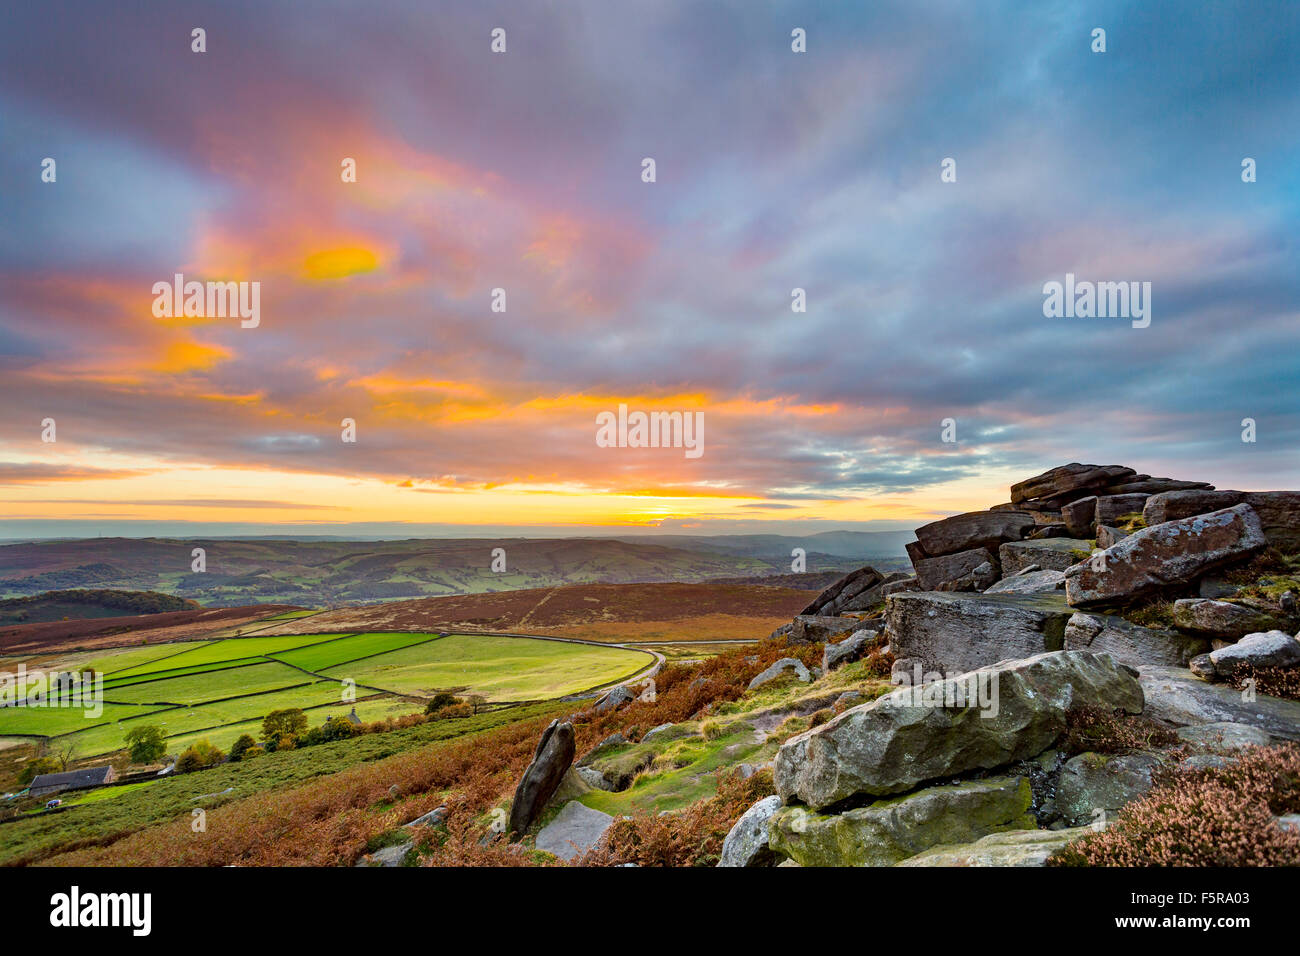 Sunset from Stanage Edge, in the Peak District National Park, Derbyshire, England, UK - Stock Image